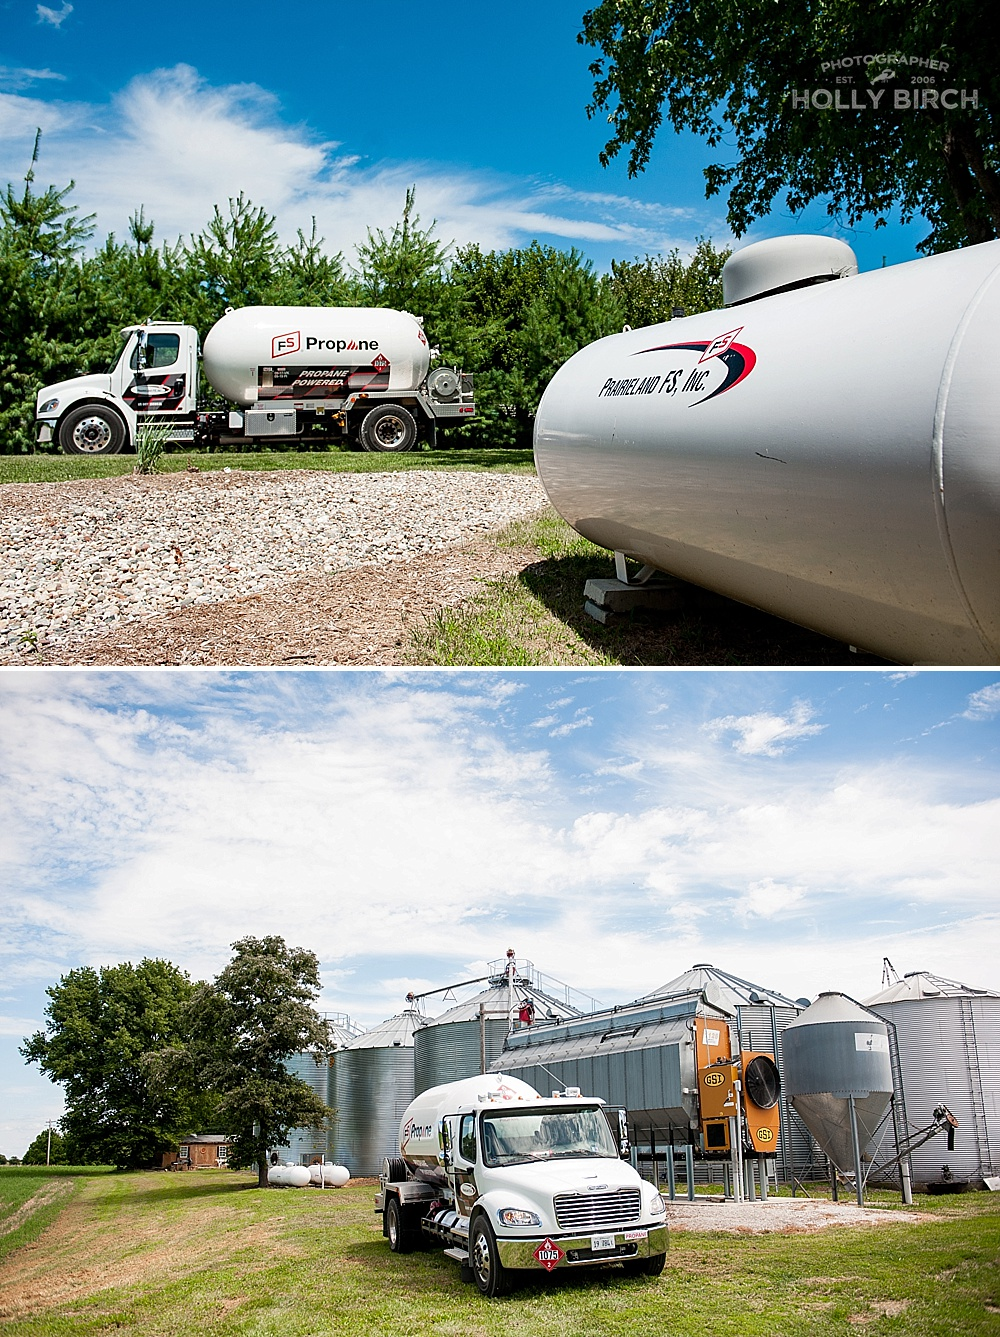 GROWMARK-residential-commercial-photoshoot-images-FS-propane_3710.jpg